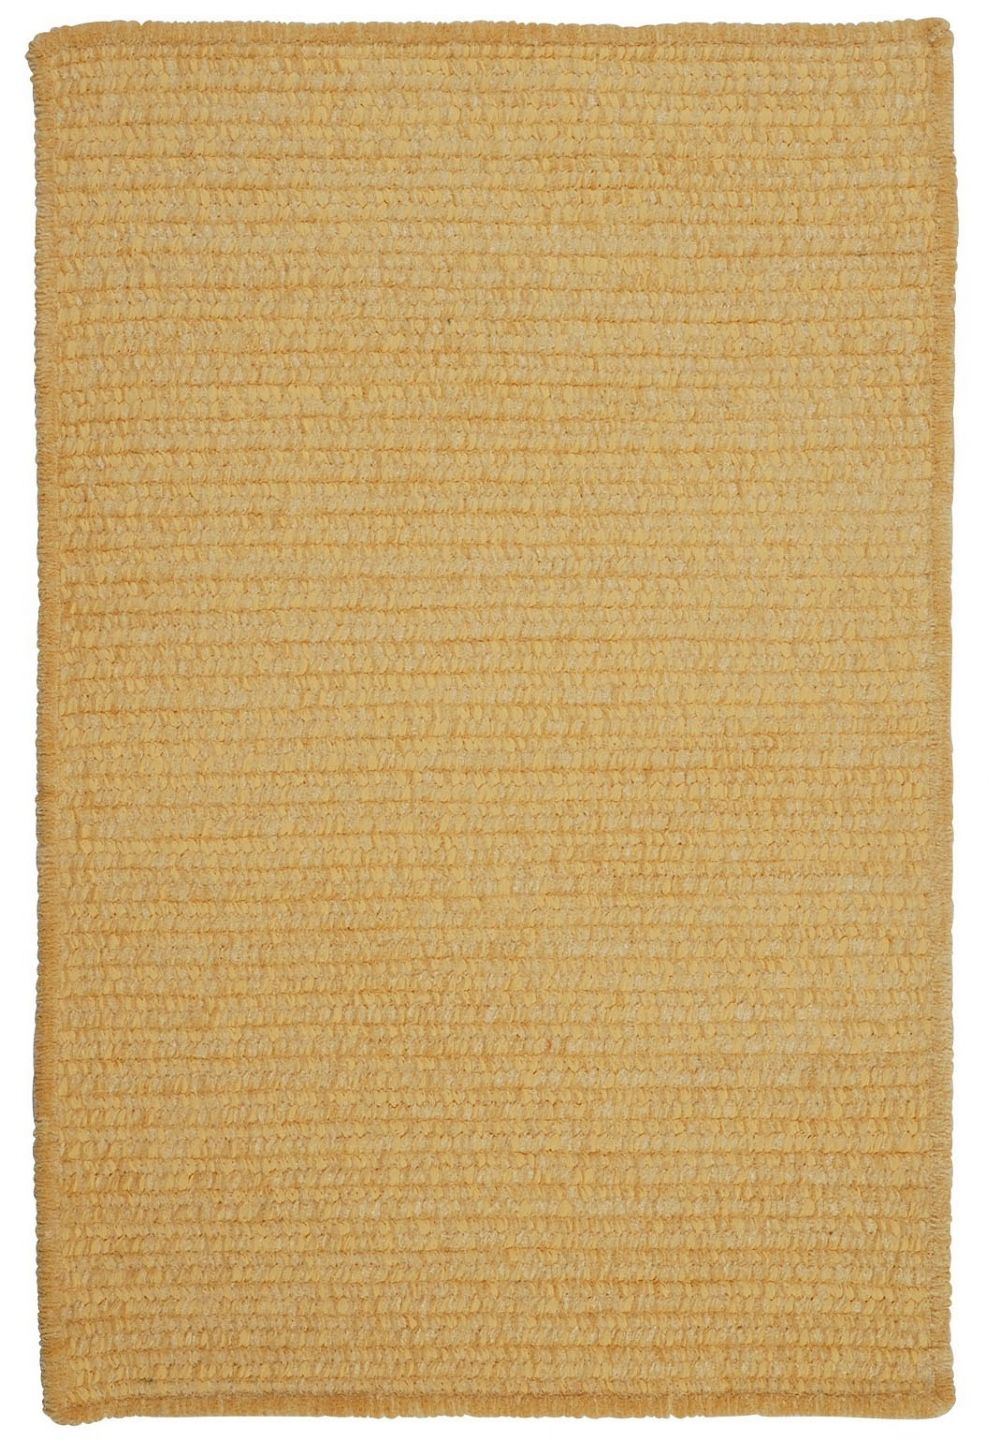 colonial mills simple chenille braided area rug collection